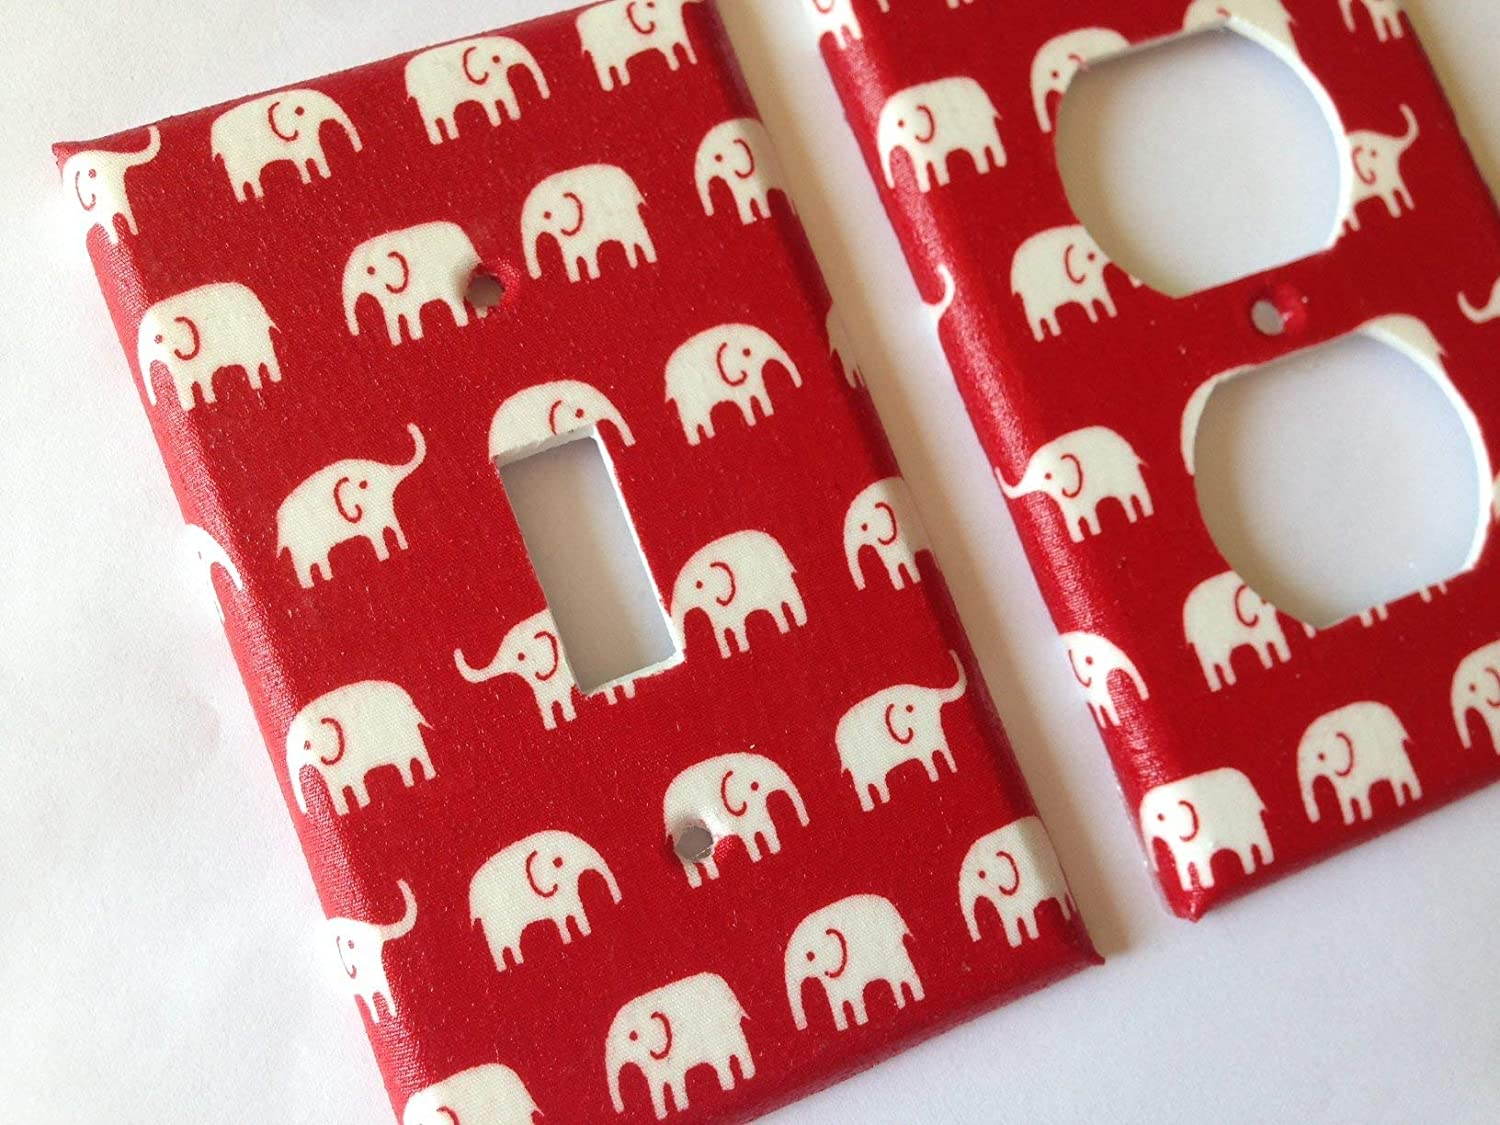 Elephant Light Switch Cover Various Sizes Offered